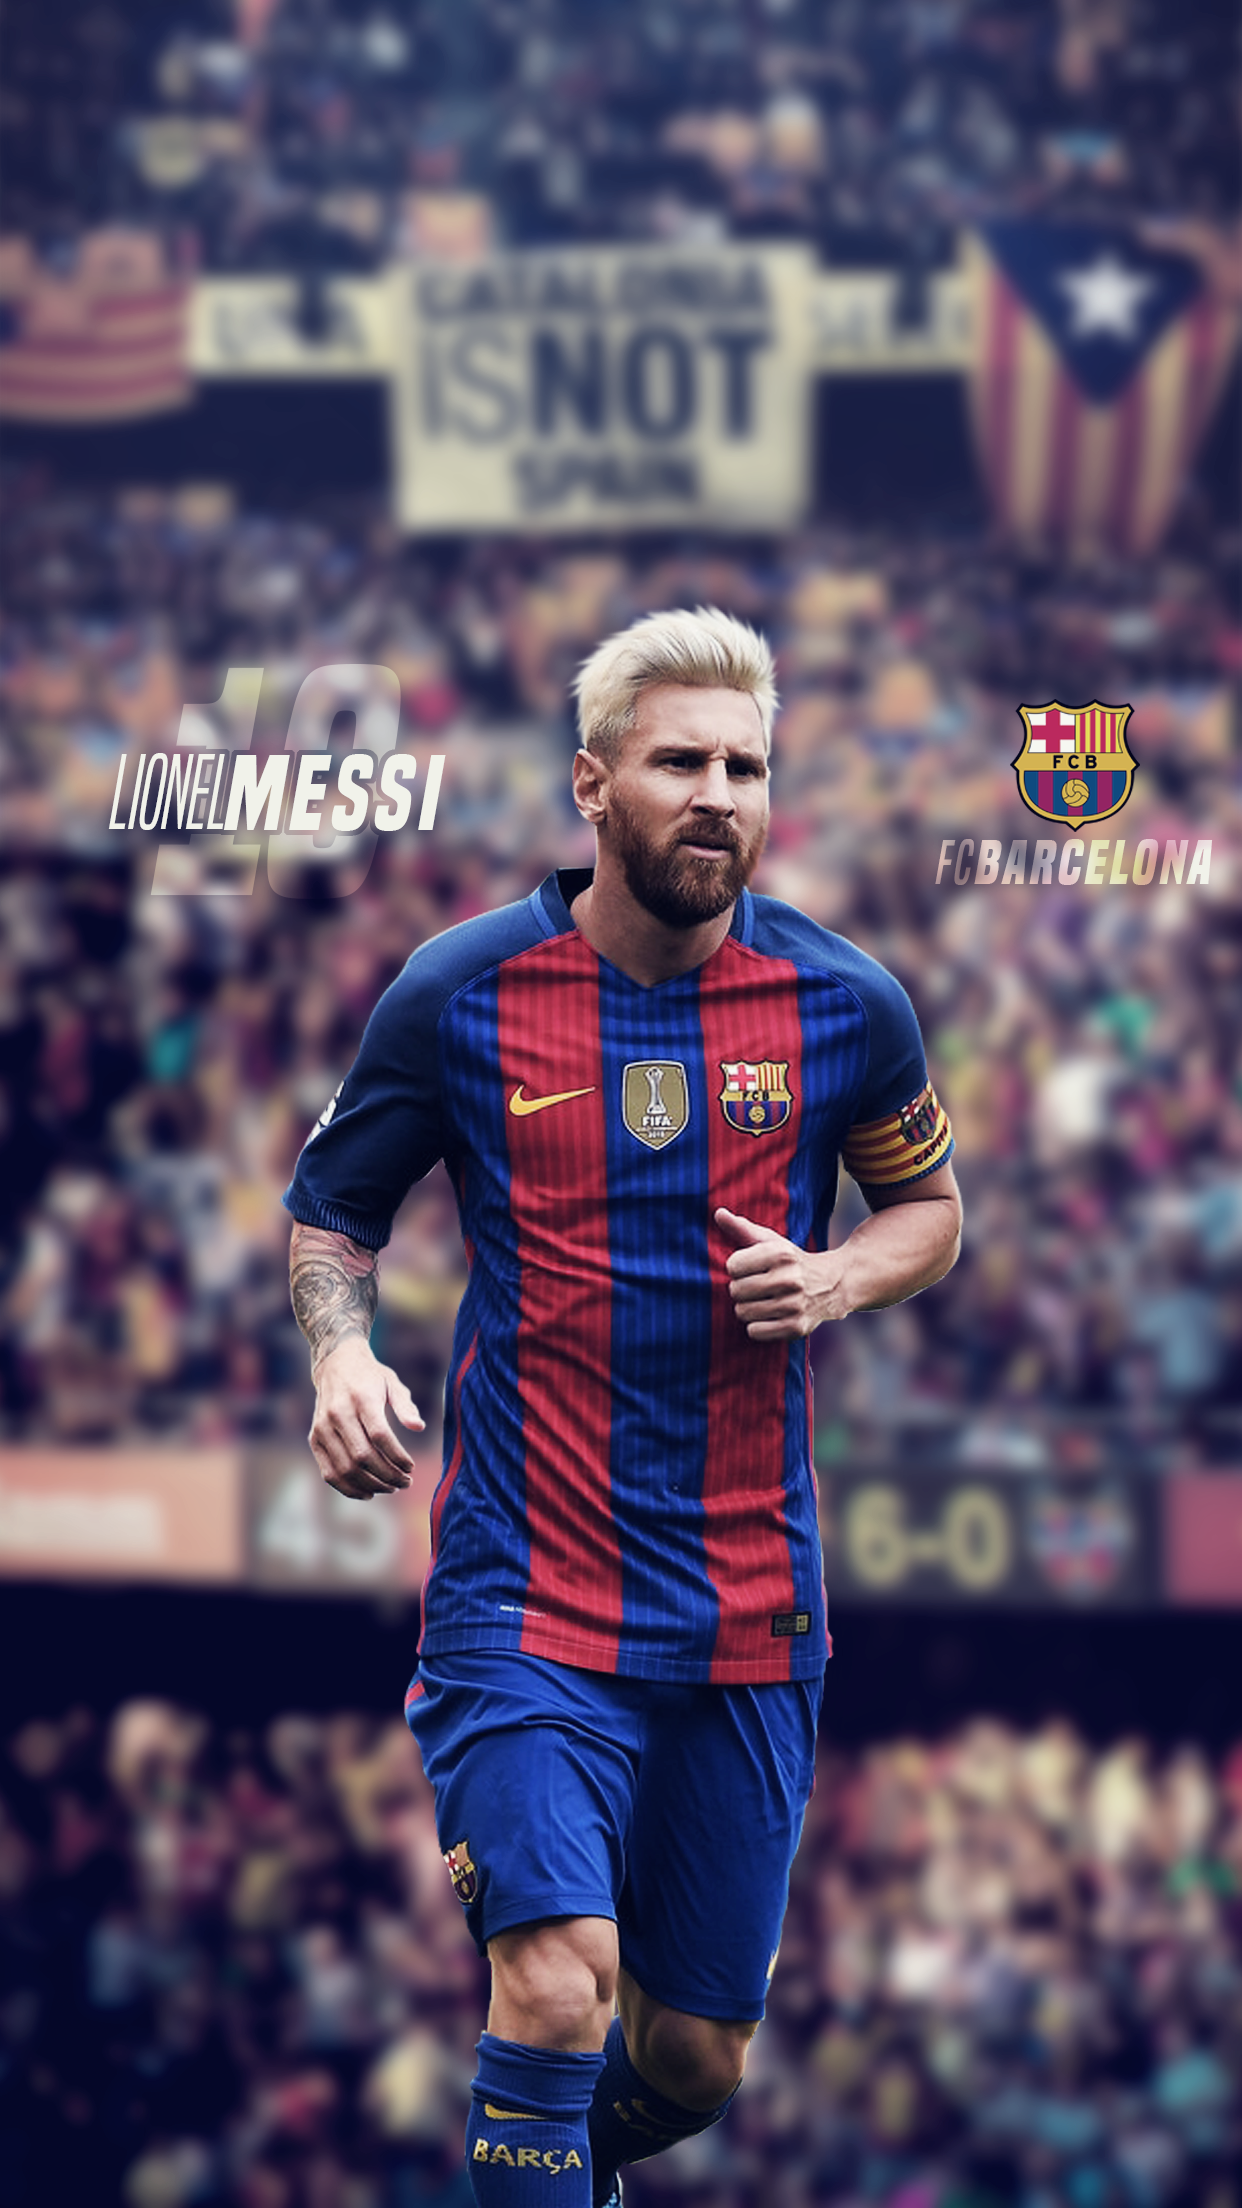 Messi Iphone Wallpaper By Imdestructiconor On Deviantart